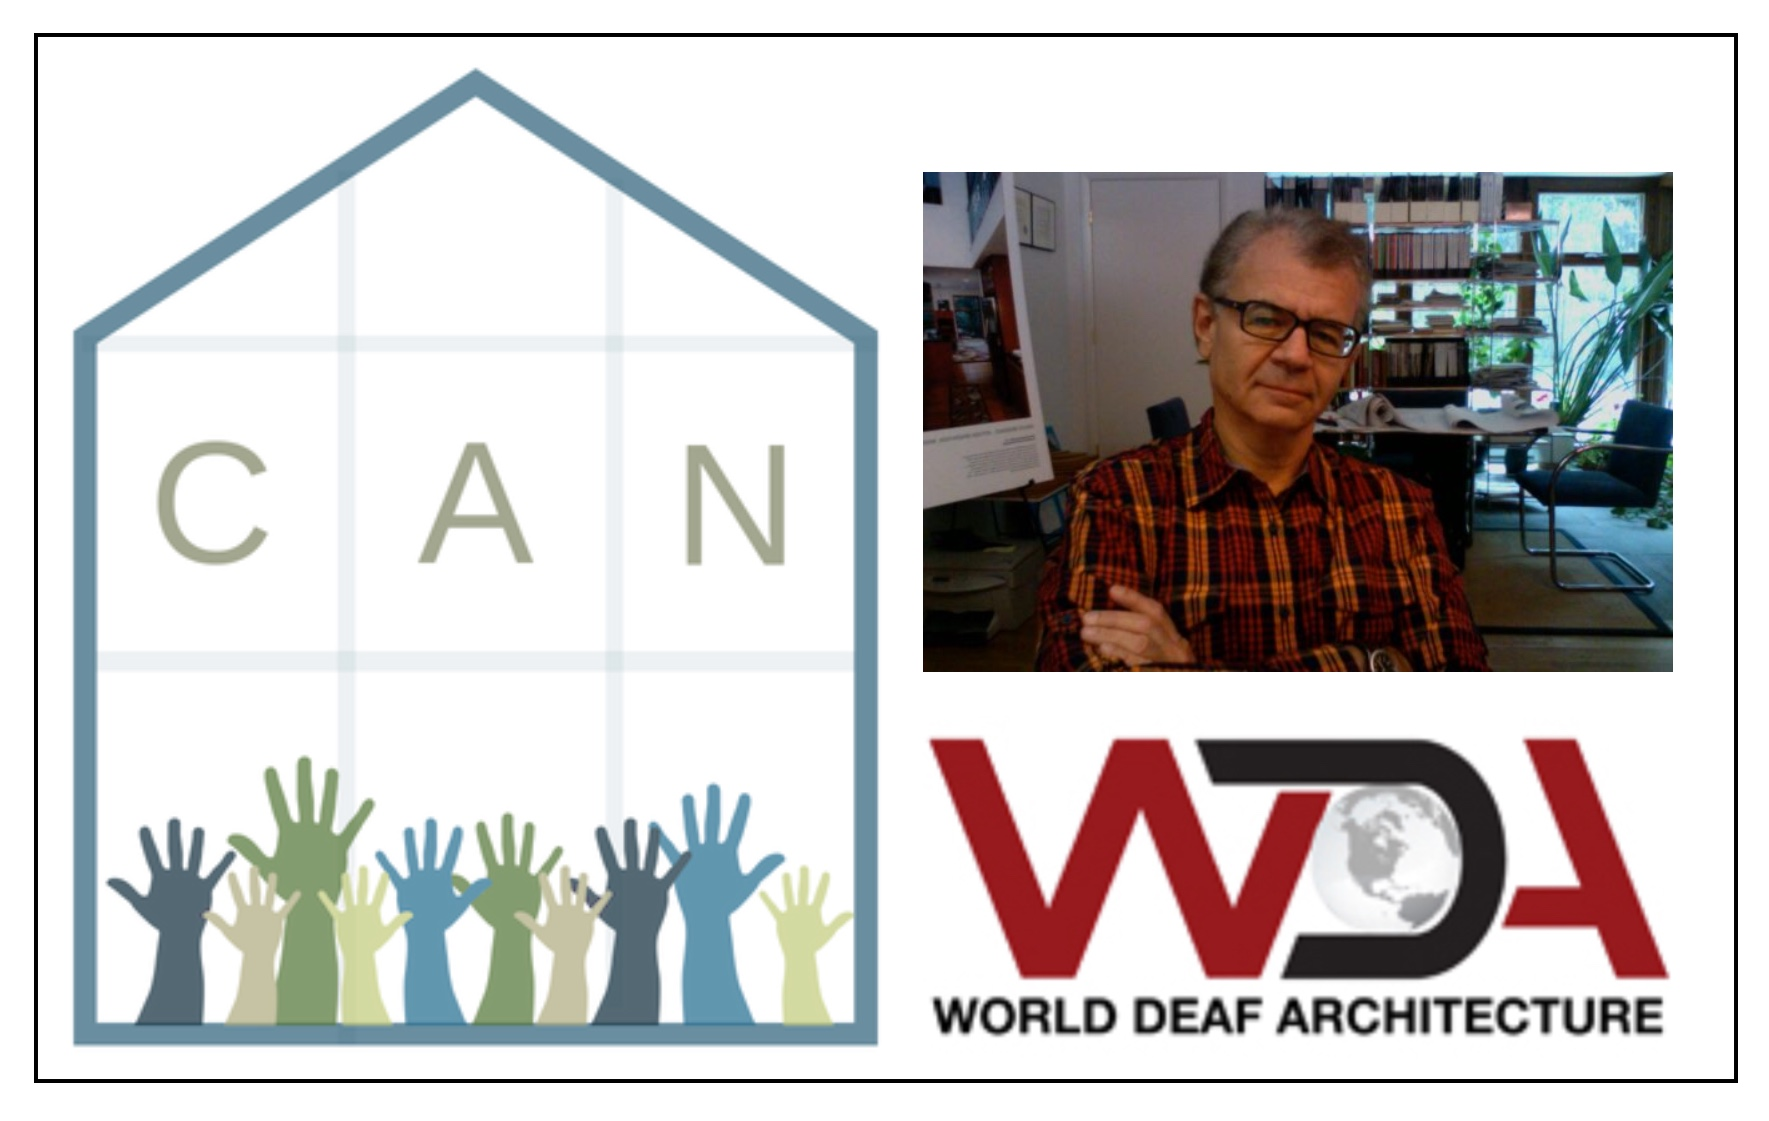 Robert Nichols presents World Deaf Architecture @ Five Loaves